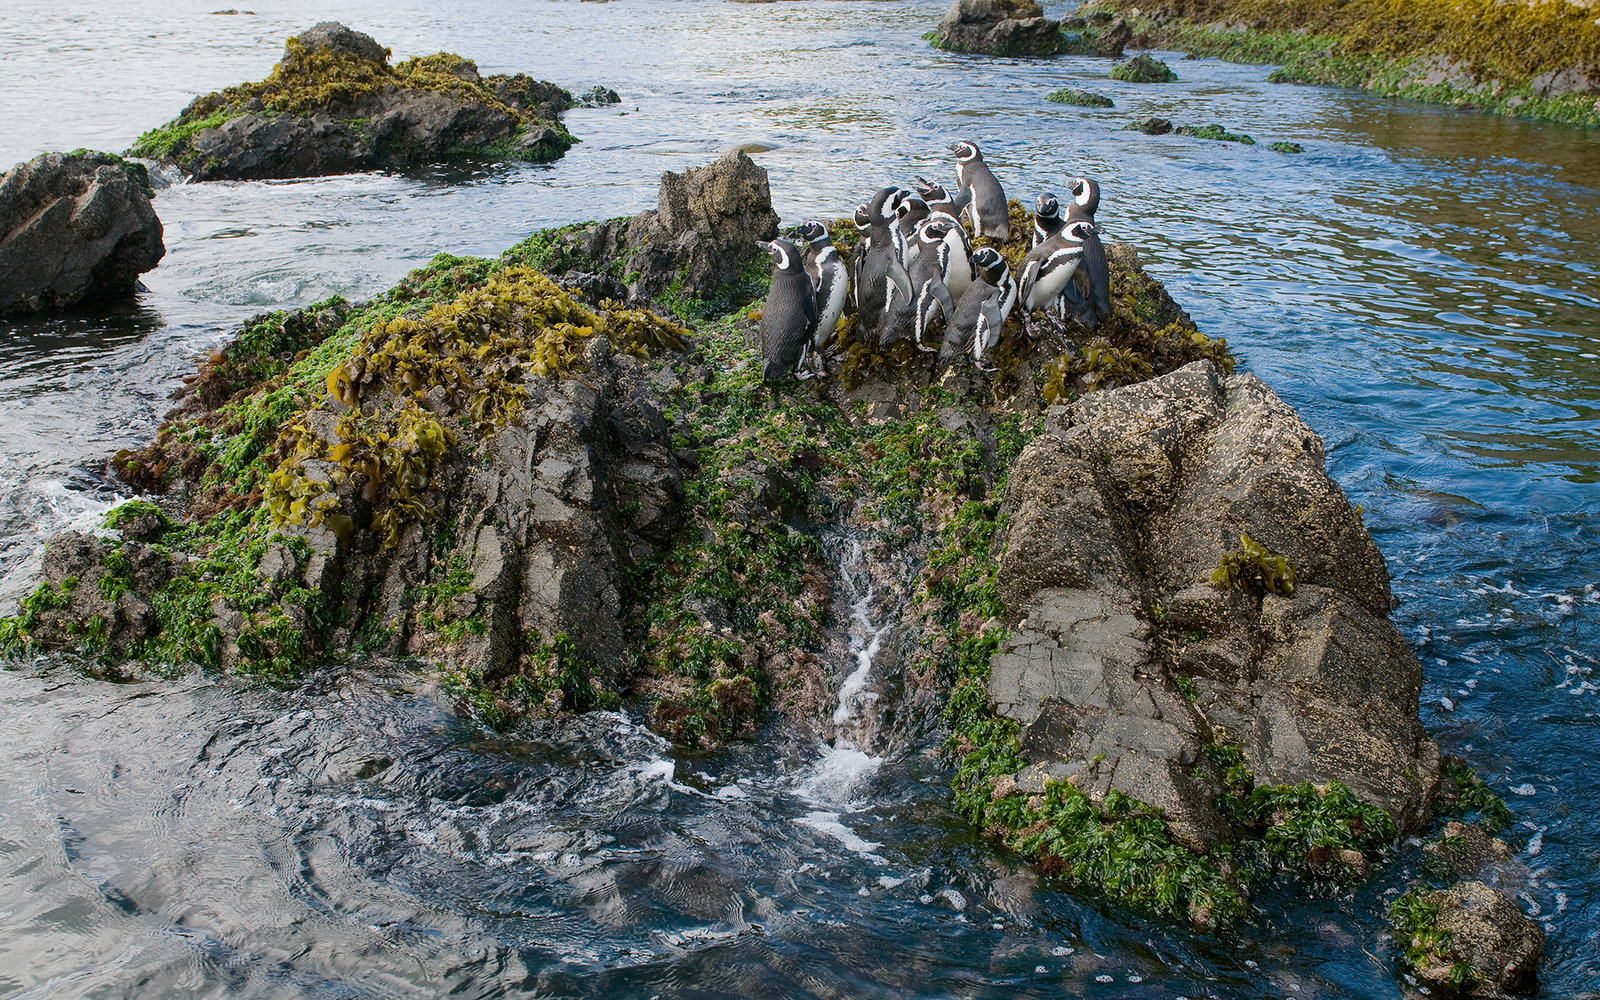 Magellanic Penguin (Spheniscus magellanicus) group on rock, Chiloe Island, Chile